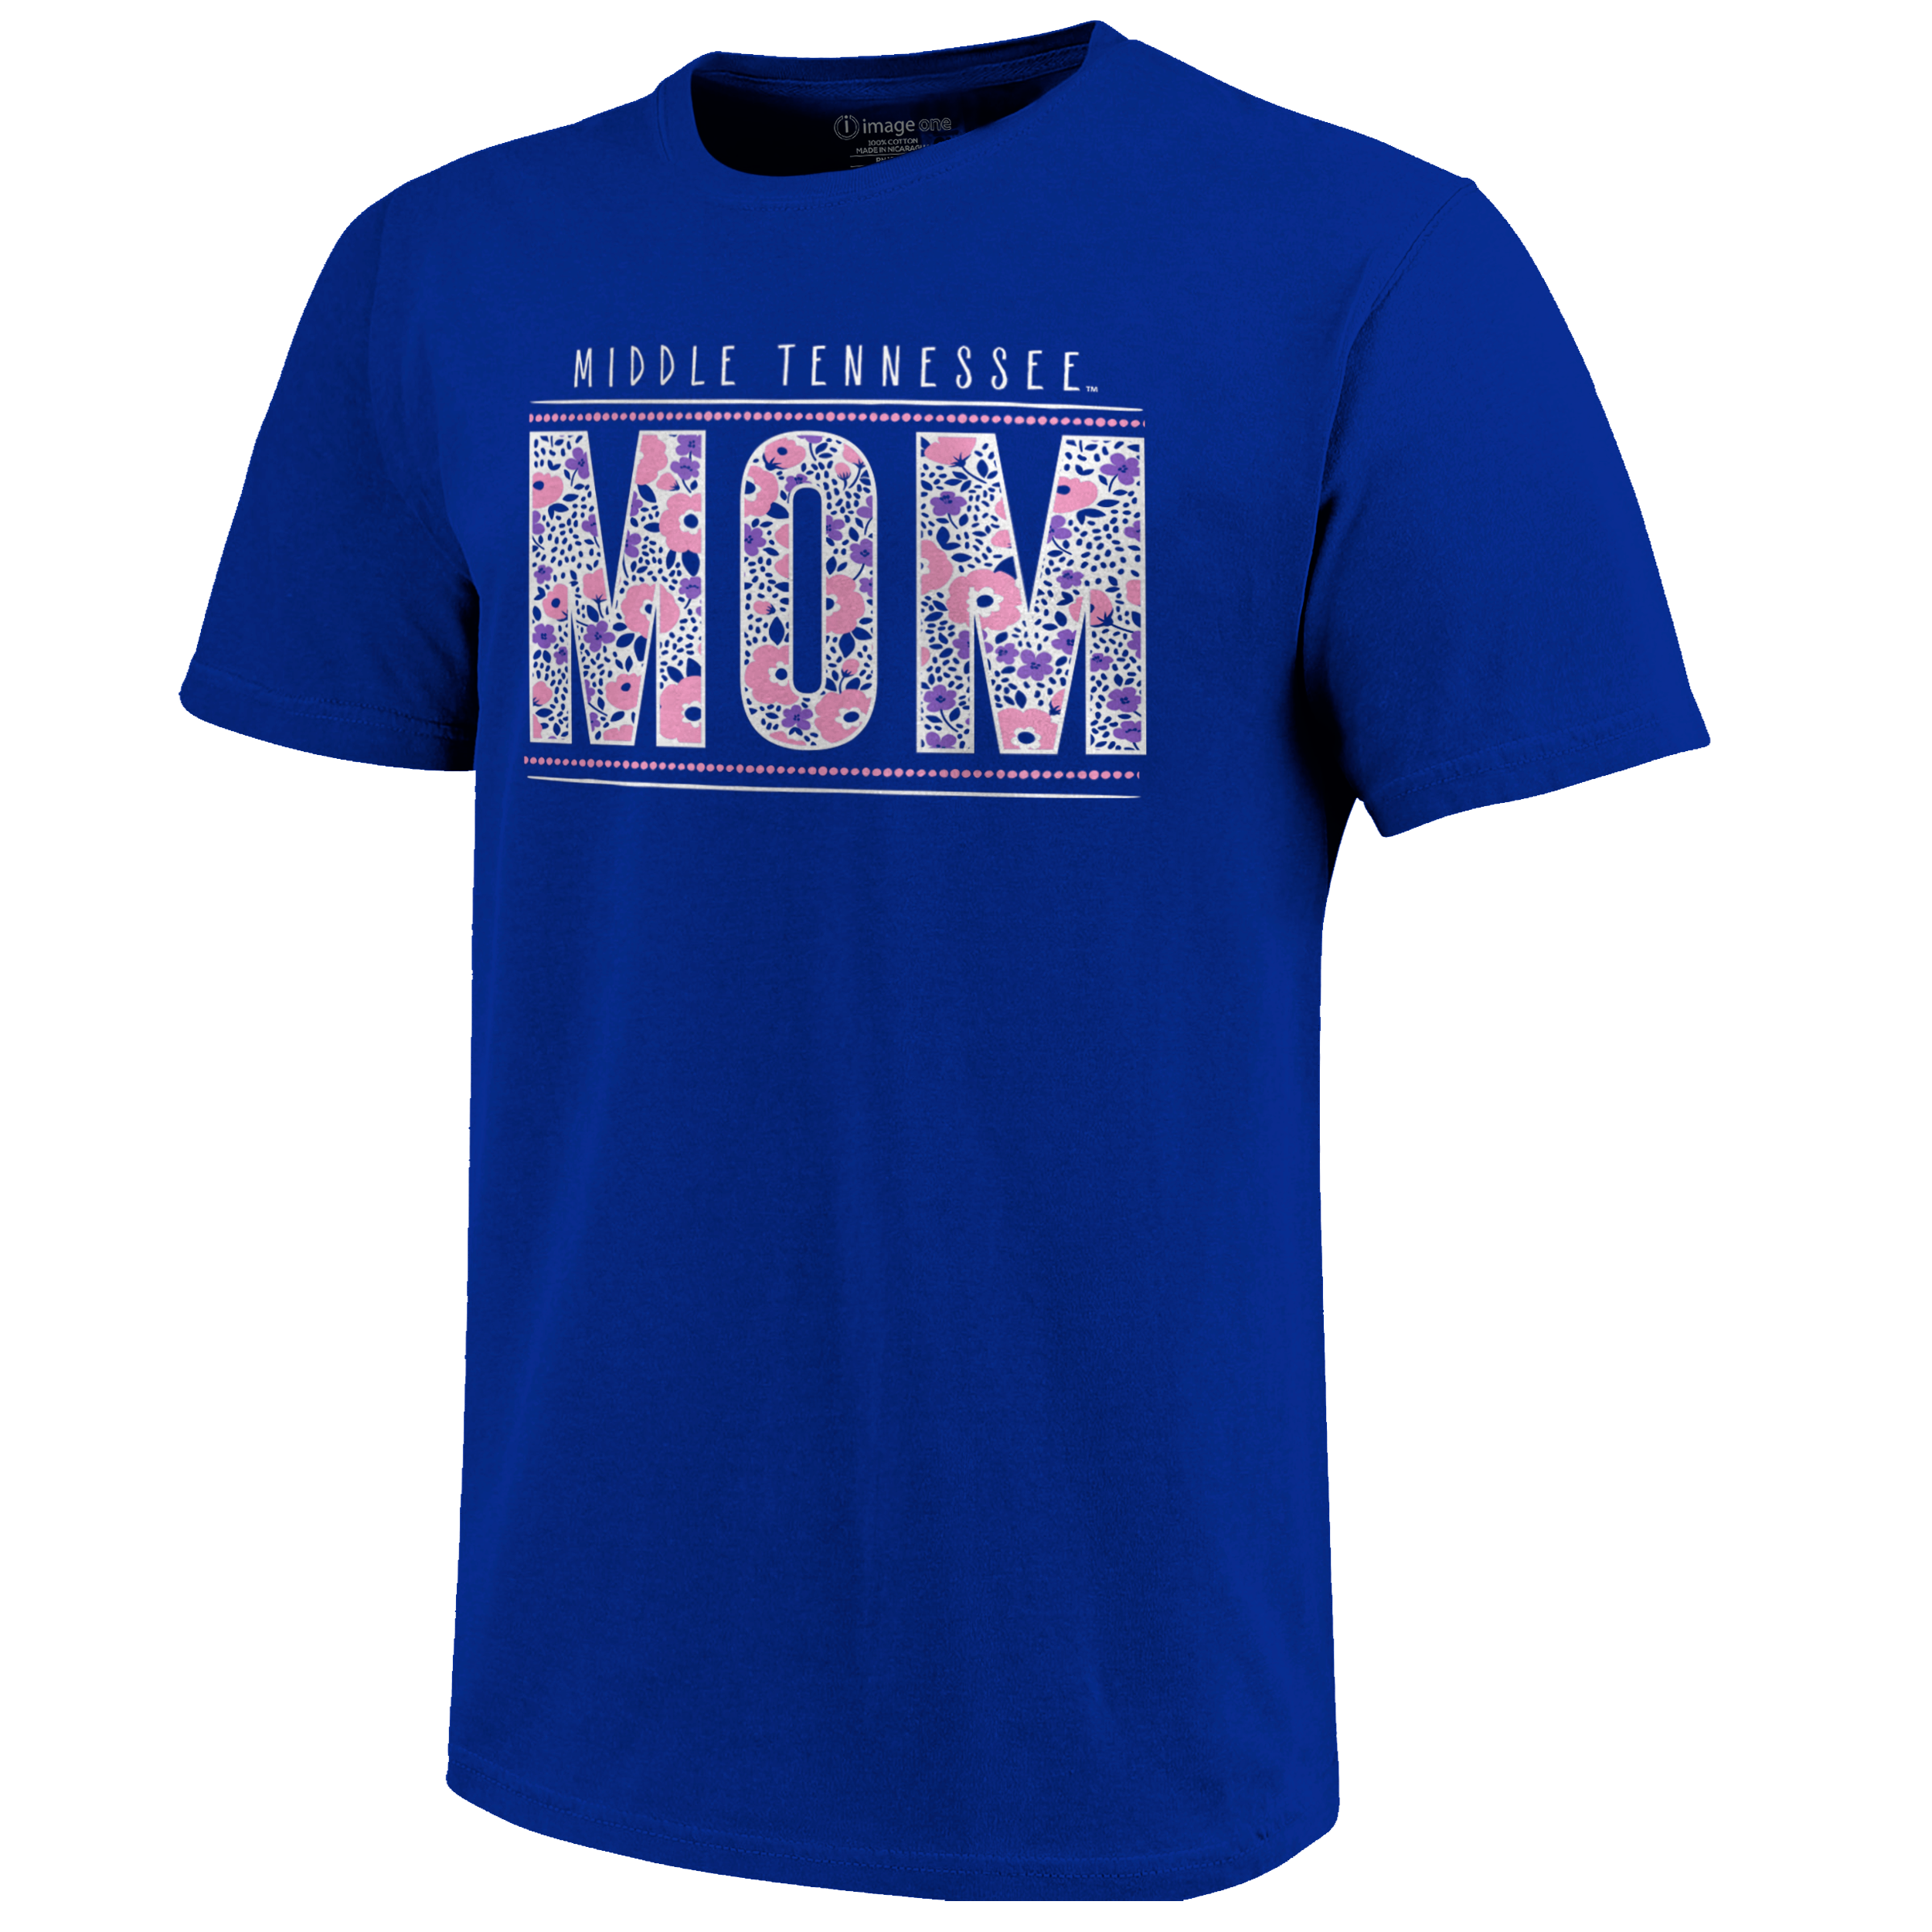 Middle Tennessee Mom Floral Dot Tshirt